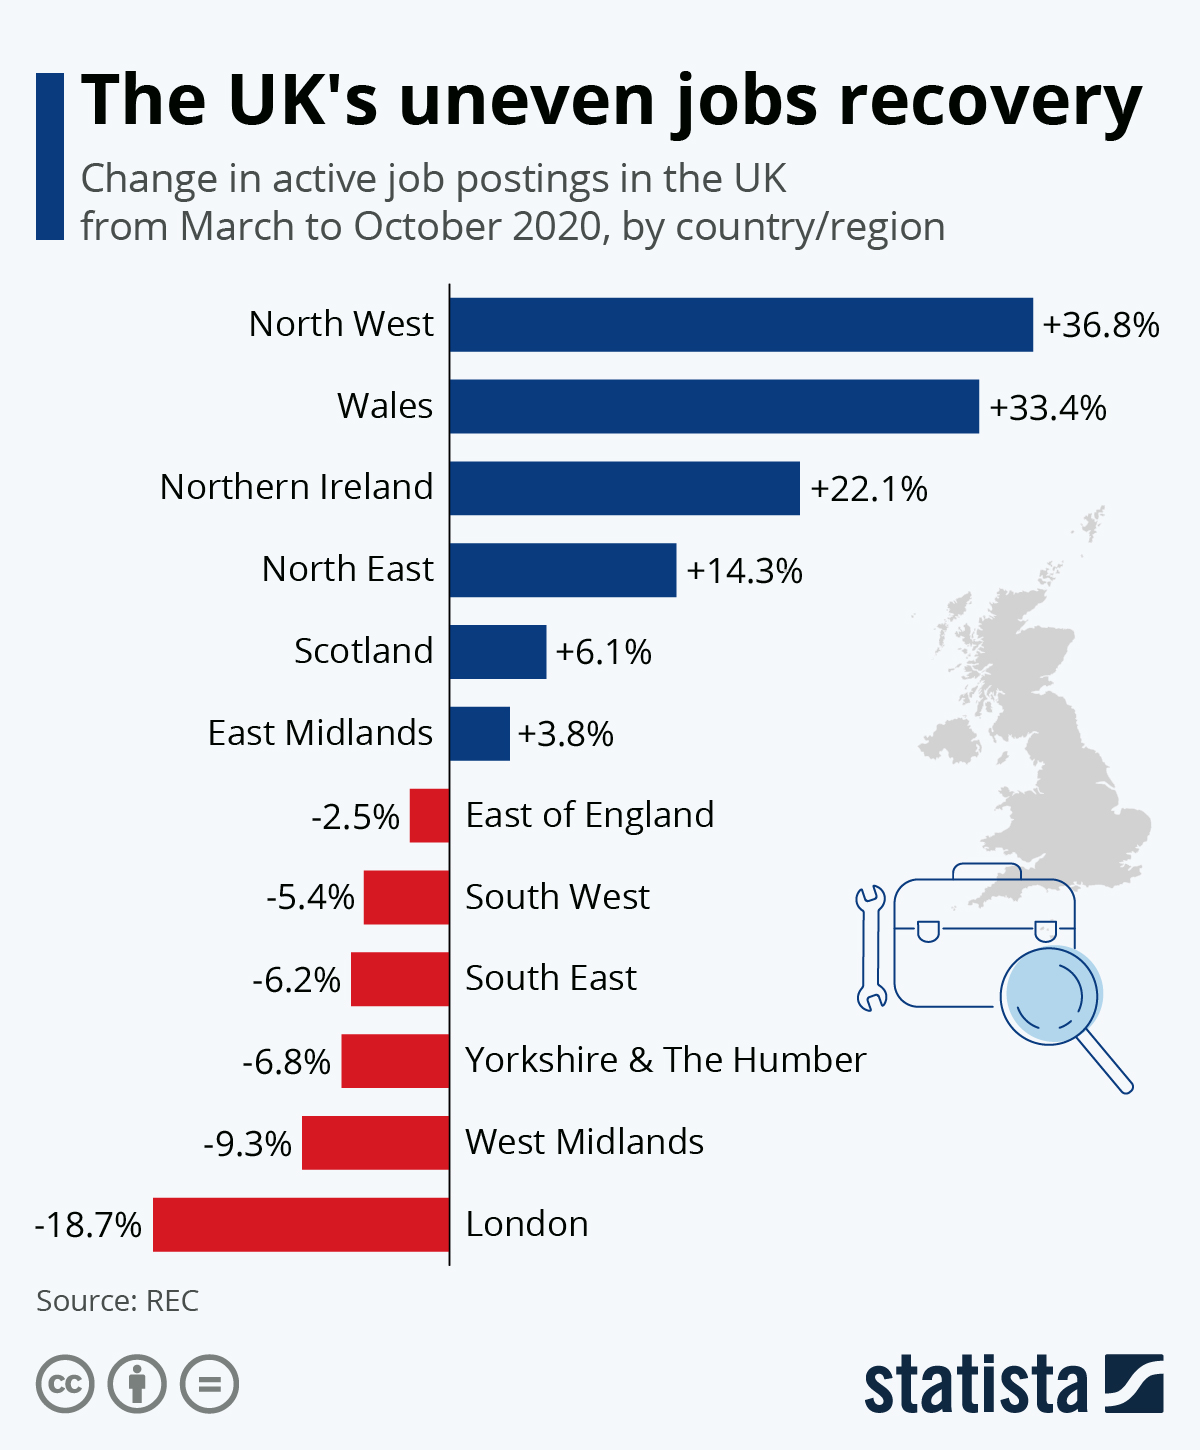 The UK's Uneven Jobs Recovery